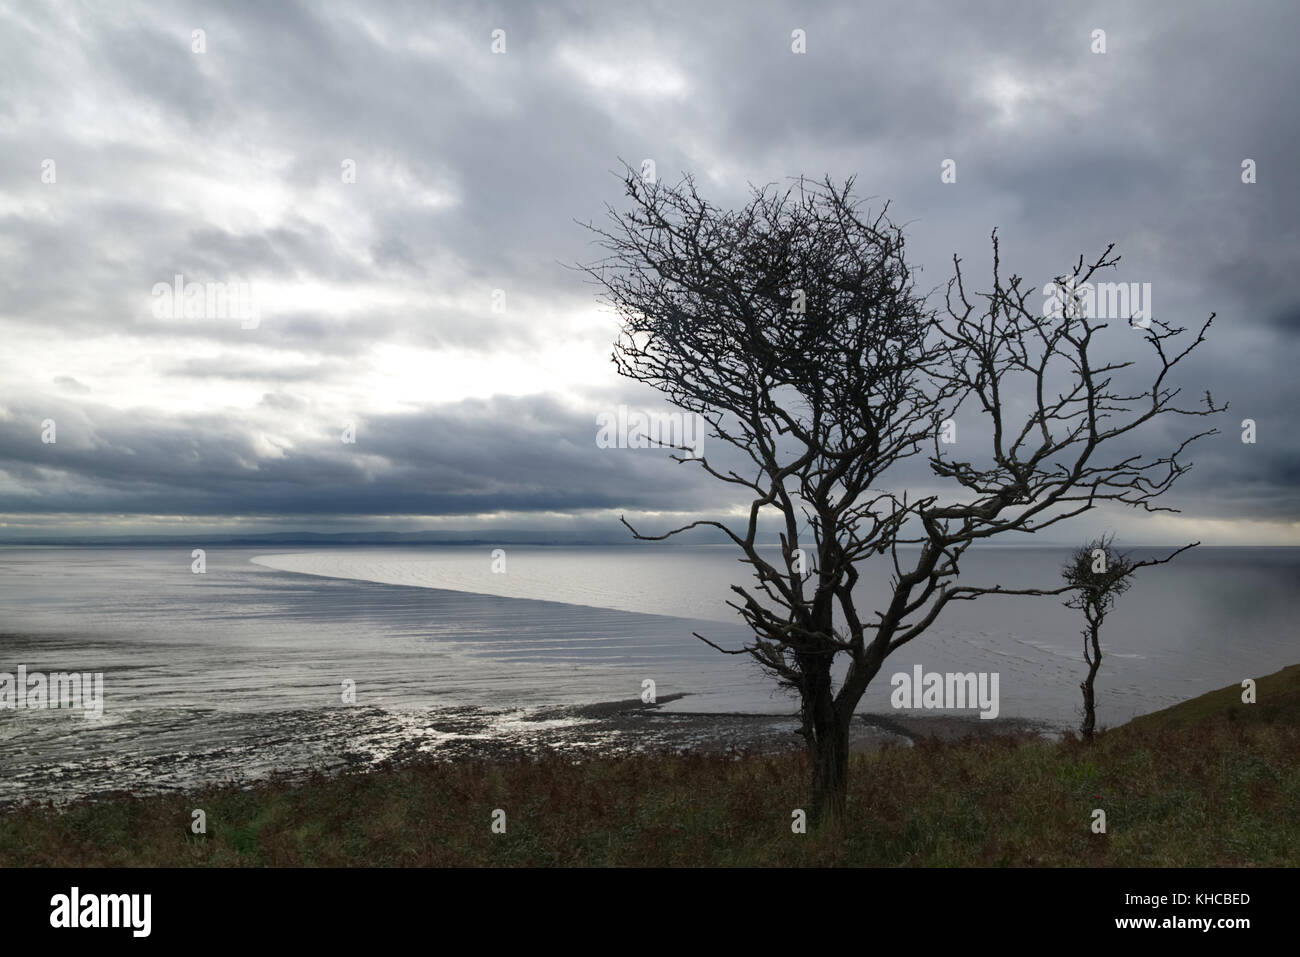 Silhouette of windswept trees on Brean Down, Somerset, England looking out to sea Stock Photo